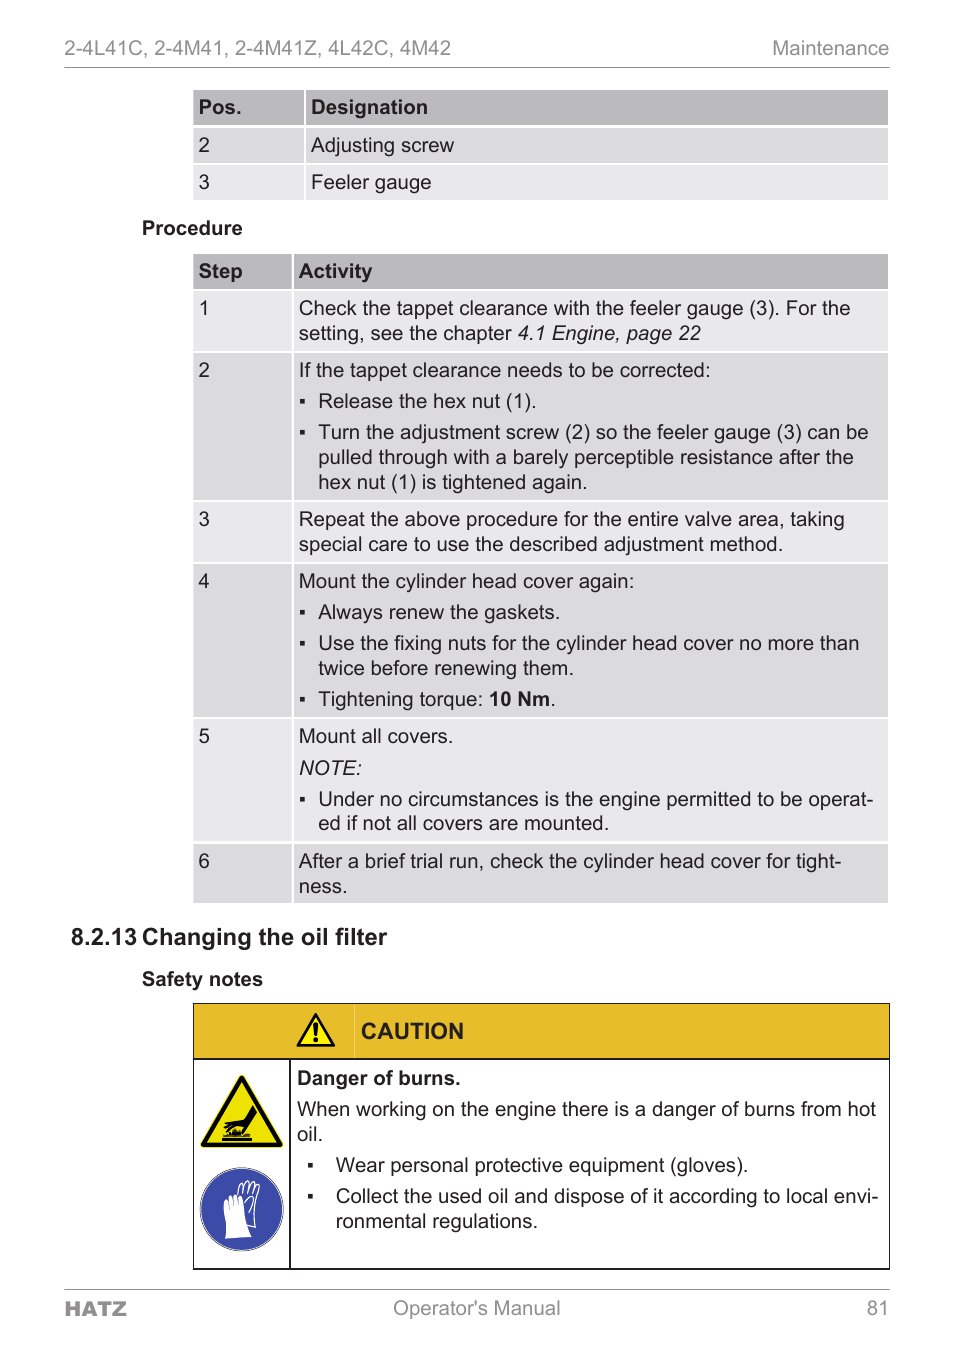 Changing the oil filter, 13 changing the oil filter | HATZ Diesel 4M42 User  Manual | Page 81 / 105